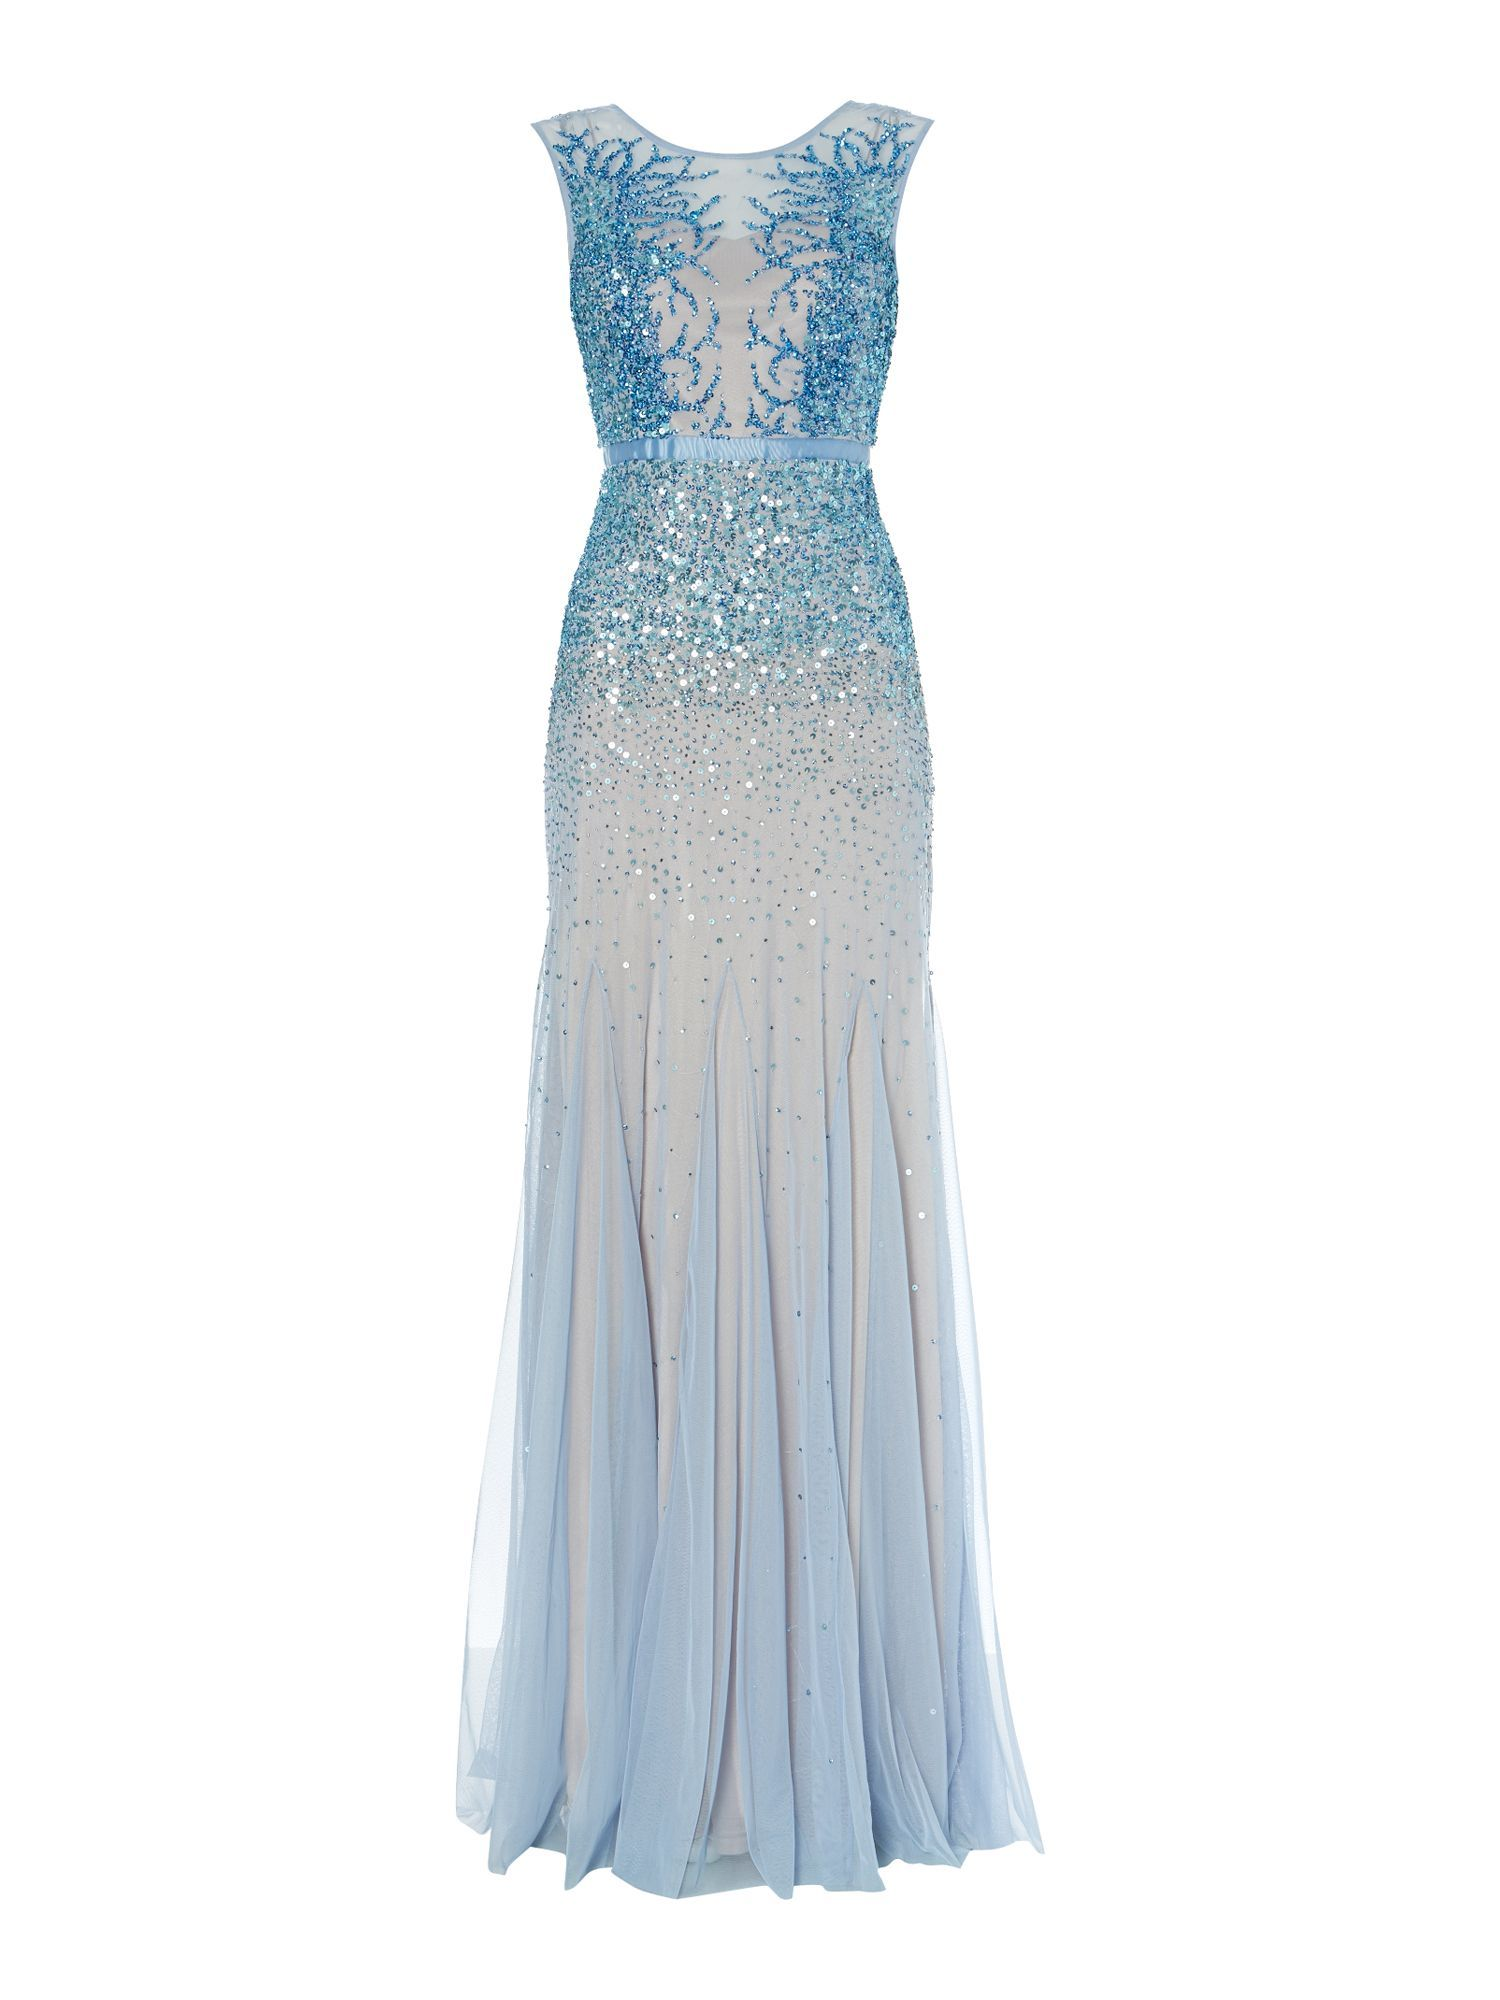 Satin Dresses Maxi Evening Gowns Mother of the Bride Outfits ...